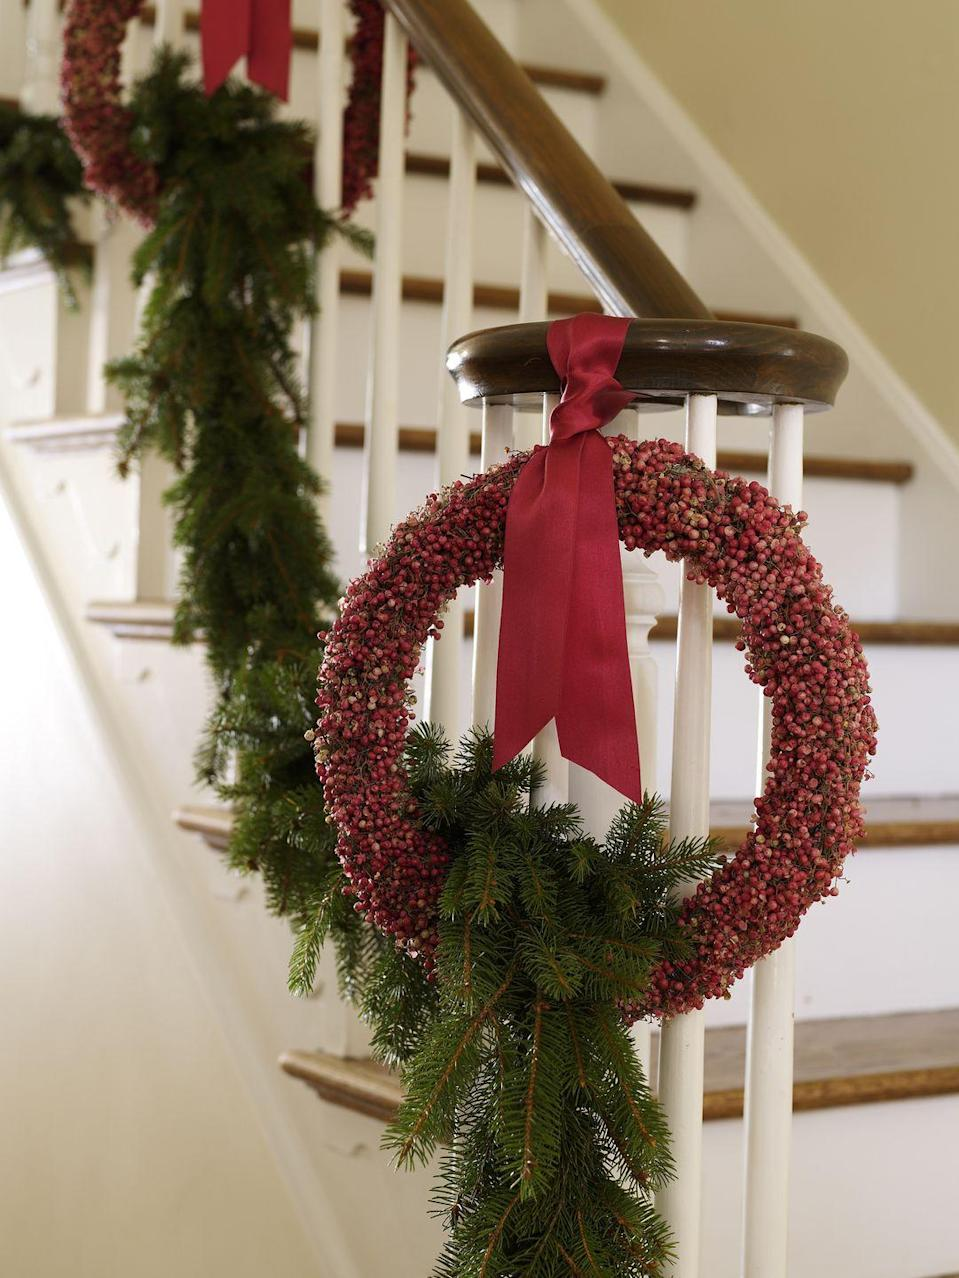 """<p>For a classic look that works from Thanksgiving through Christmas, combine cranberry-studded wreaths with a simple pine garland. </p><p><a class=""""link rapid-noclick-resp"""" href=""""https://www.amazon.com/Afloral-Natural-Norfolk-Christmas-Garland/dp/B07H9GL1CV?tag=syn-yahoo-20&ascsubtag=%5Bartid%7C10072.g.34479907%5Bsrc%7Cyahoo-us"""" rel=""""nofollow noopener"""" target=""""_blank"""" data-ylk=""""slk:SHOP PINE GARLAND"""">SHOP PINE GARLAND</a></p>"""